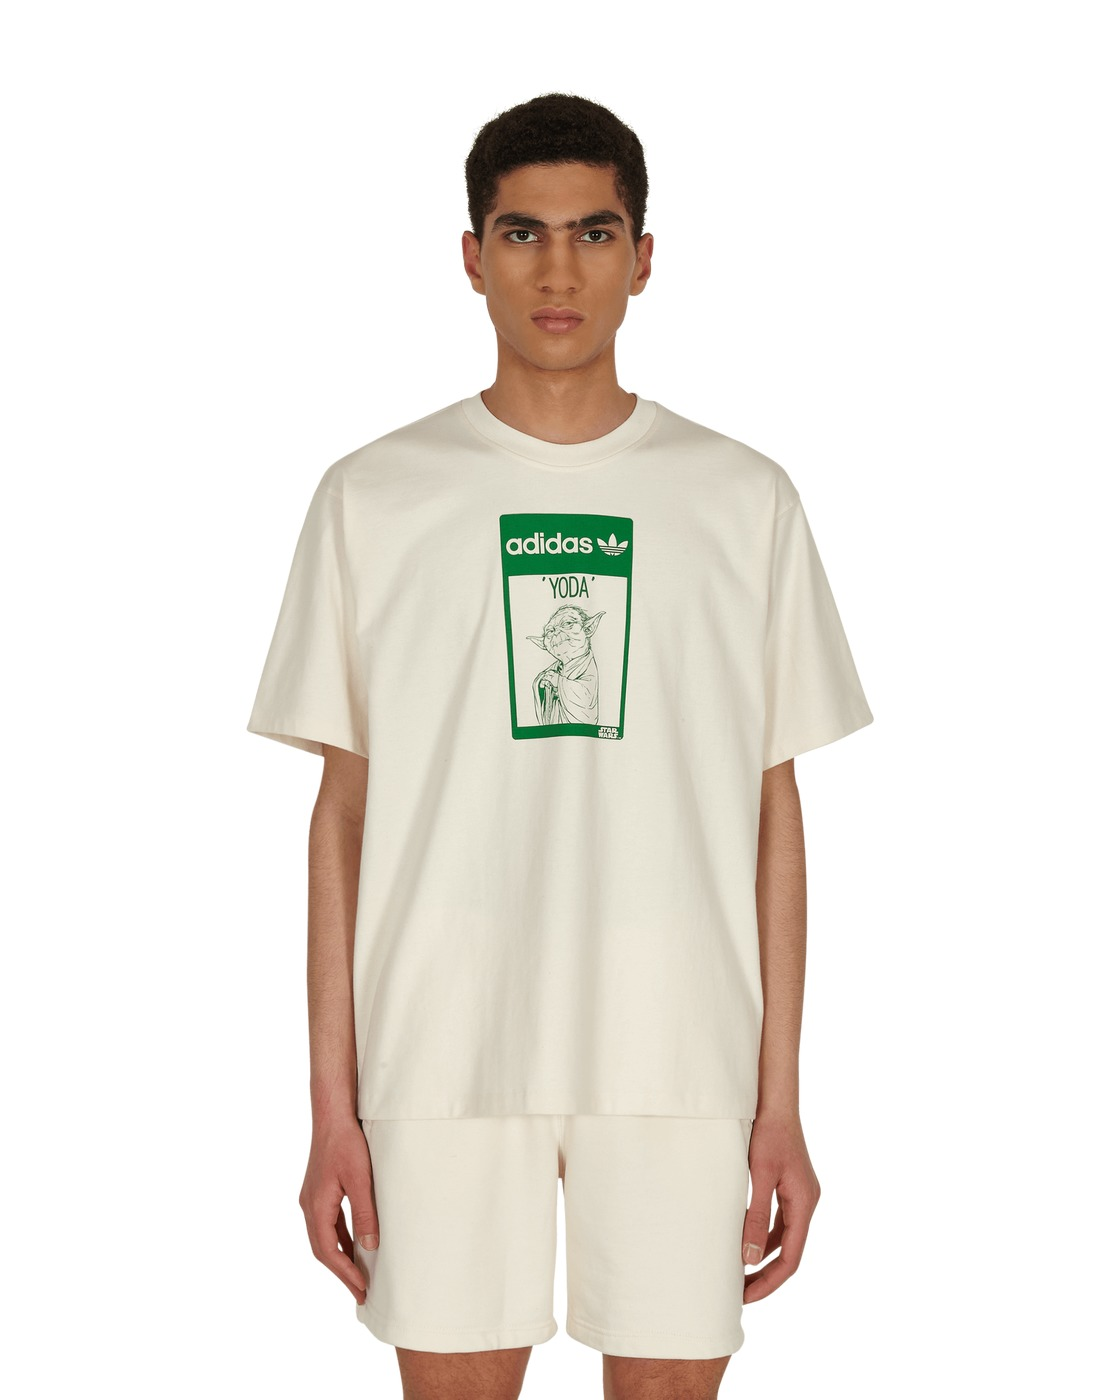 Photo: Adidas Originals Yoda T Shirt Non Dyed